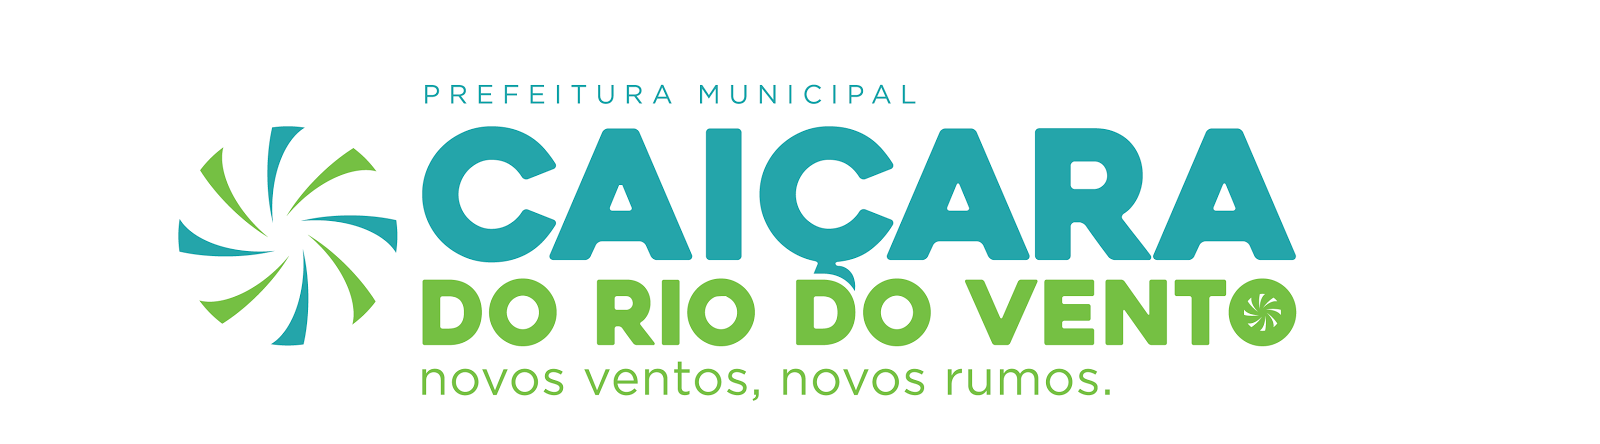 LOGOMARCA PREFEITURA DE CAIÇARA DO RIO DO VENTO RN